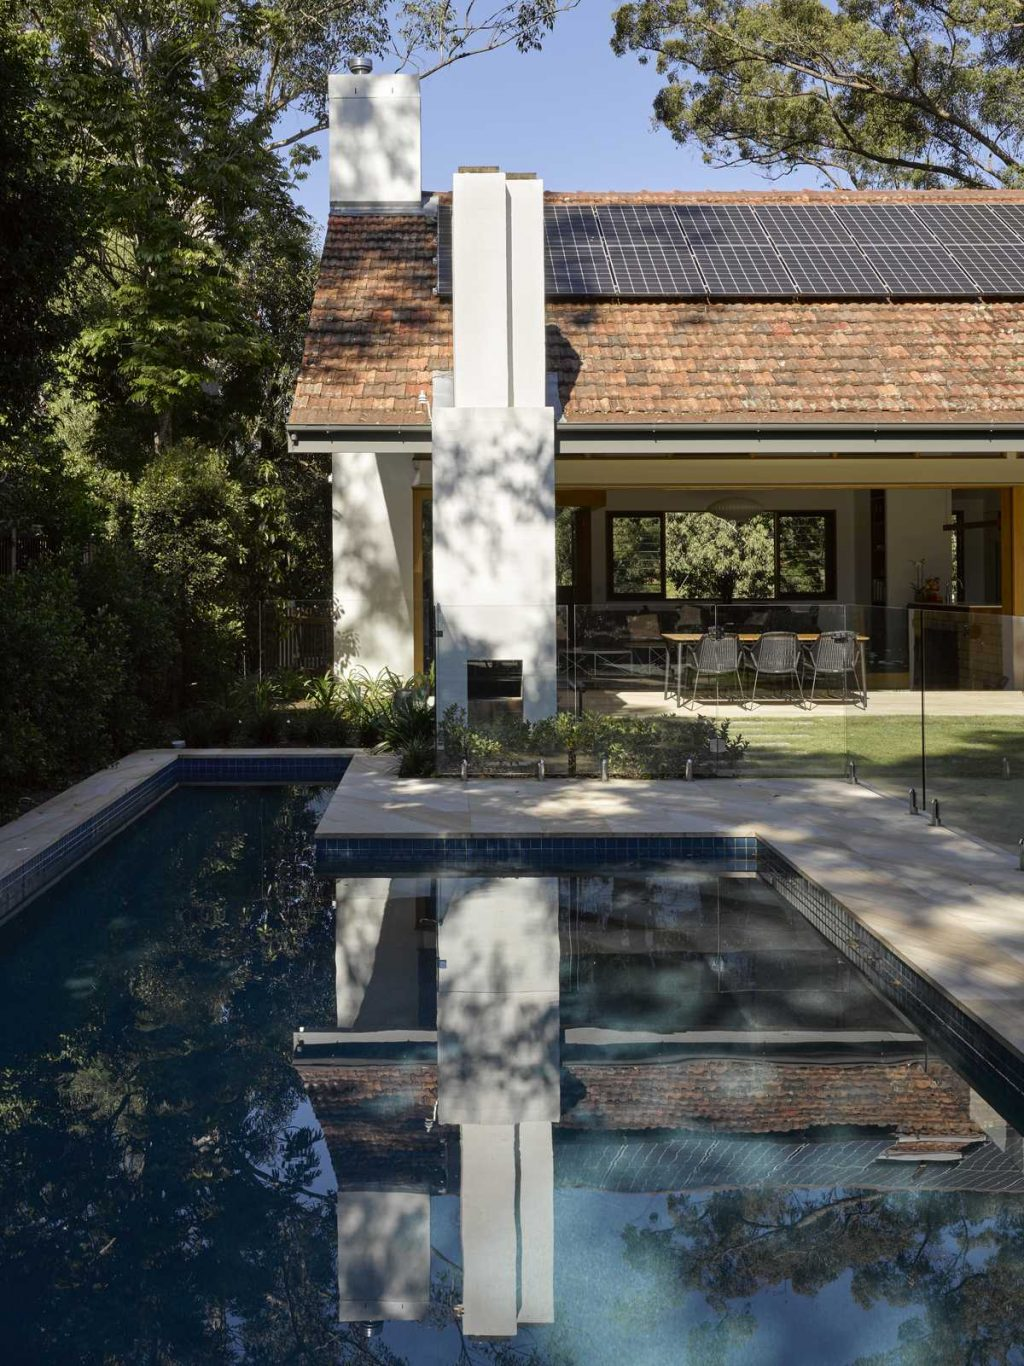 Terracotta Tiled Roof House Renovation By Shane Thompson Architects